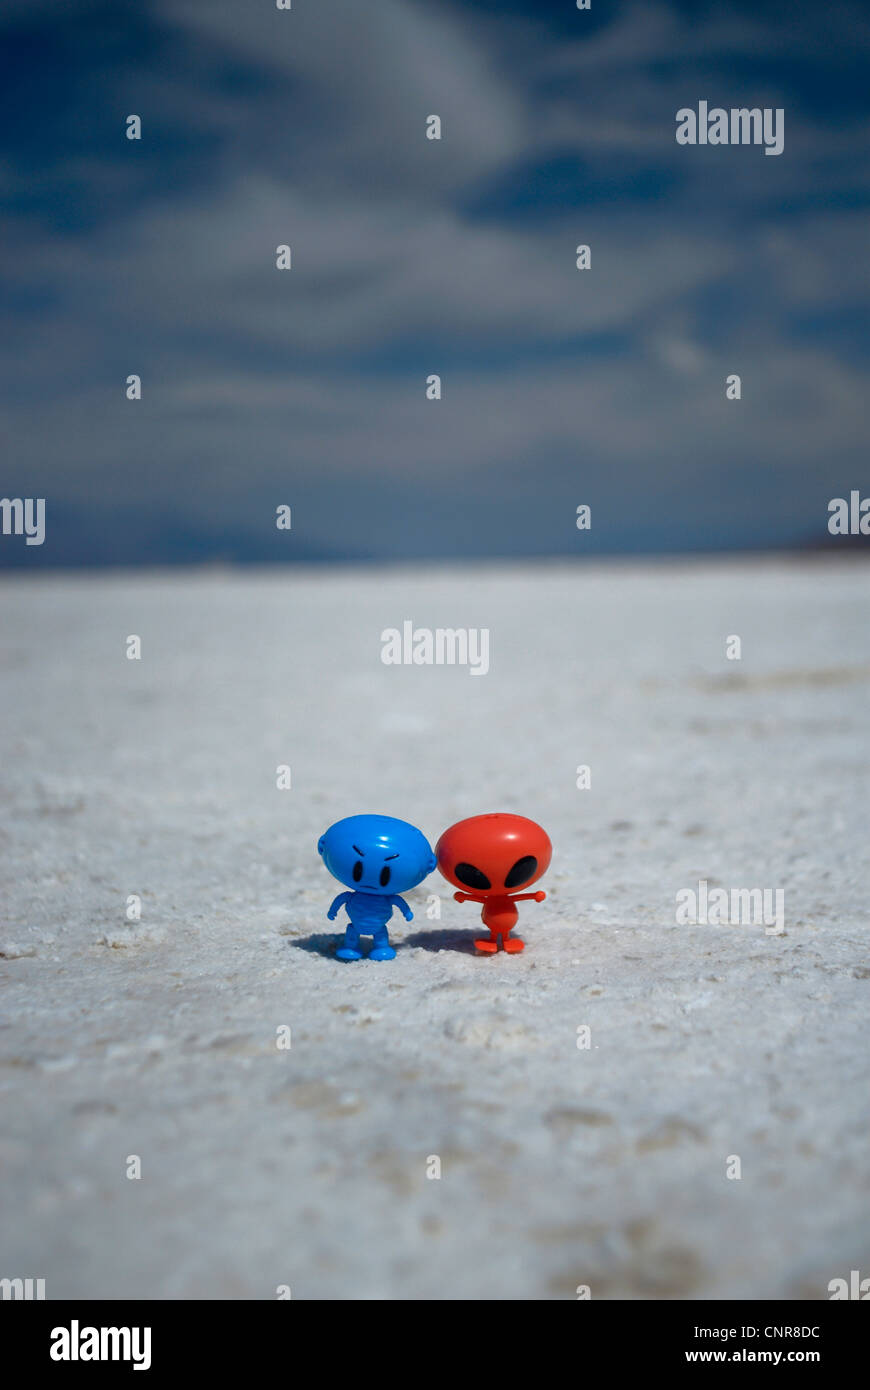 Toy alien figures on dirt path - Stock Image